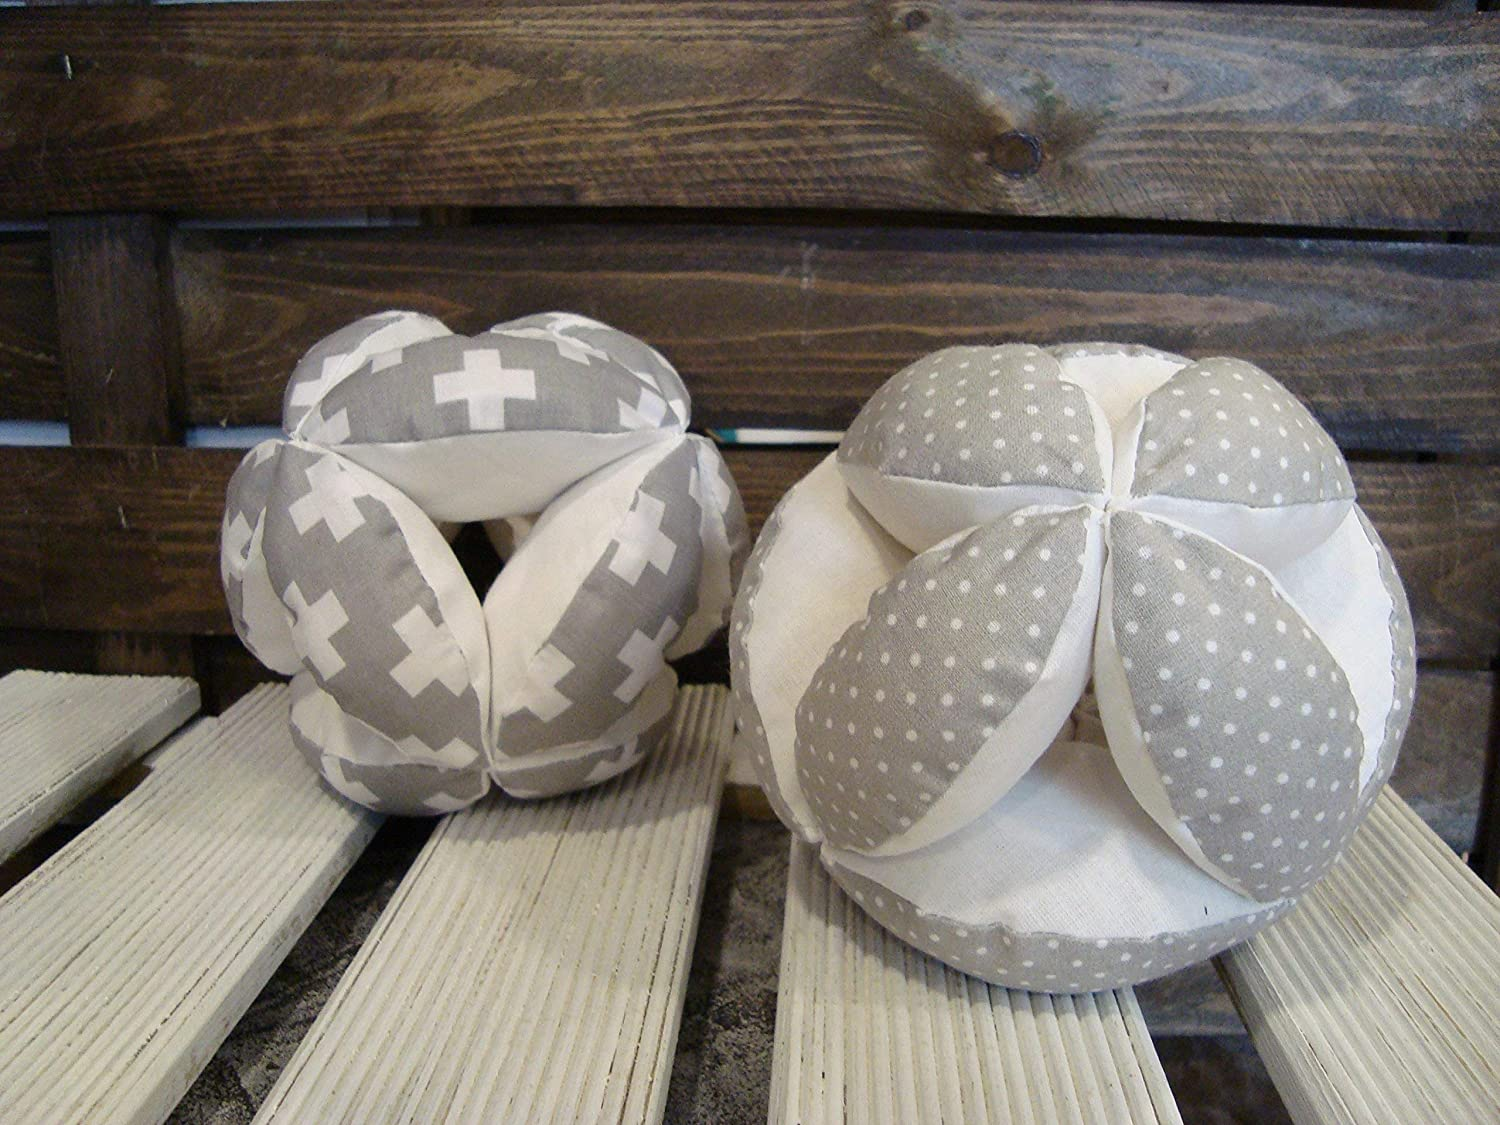 Gray puzzle ball, Montessori baby toy, fabric plus signs ball, gray dots ball, gray swiss cross ball, gray nursery